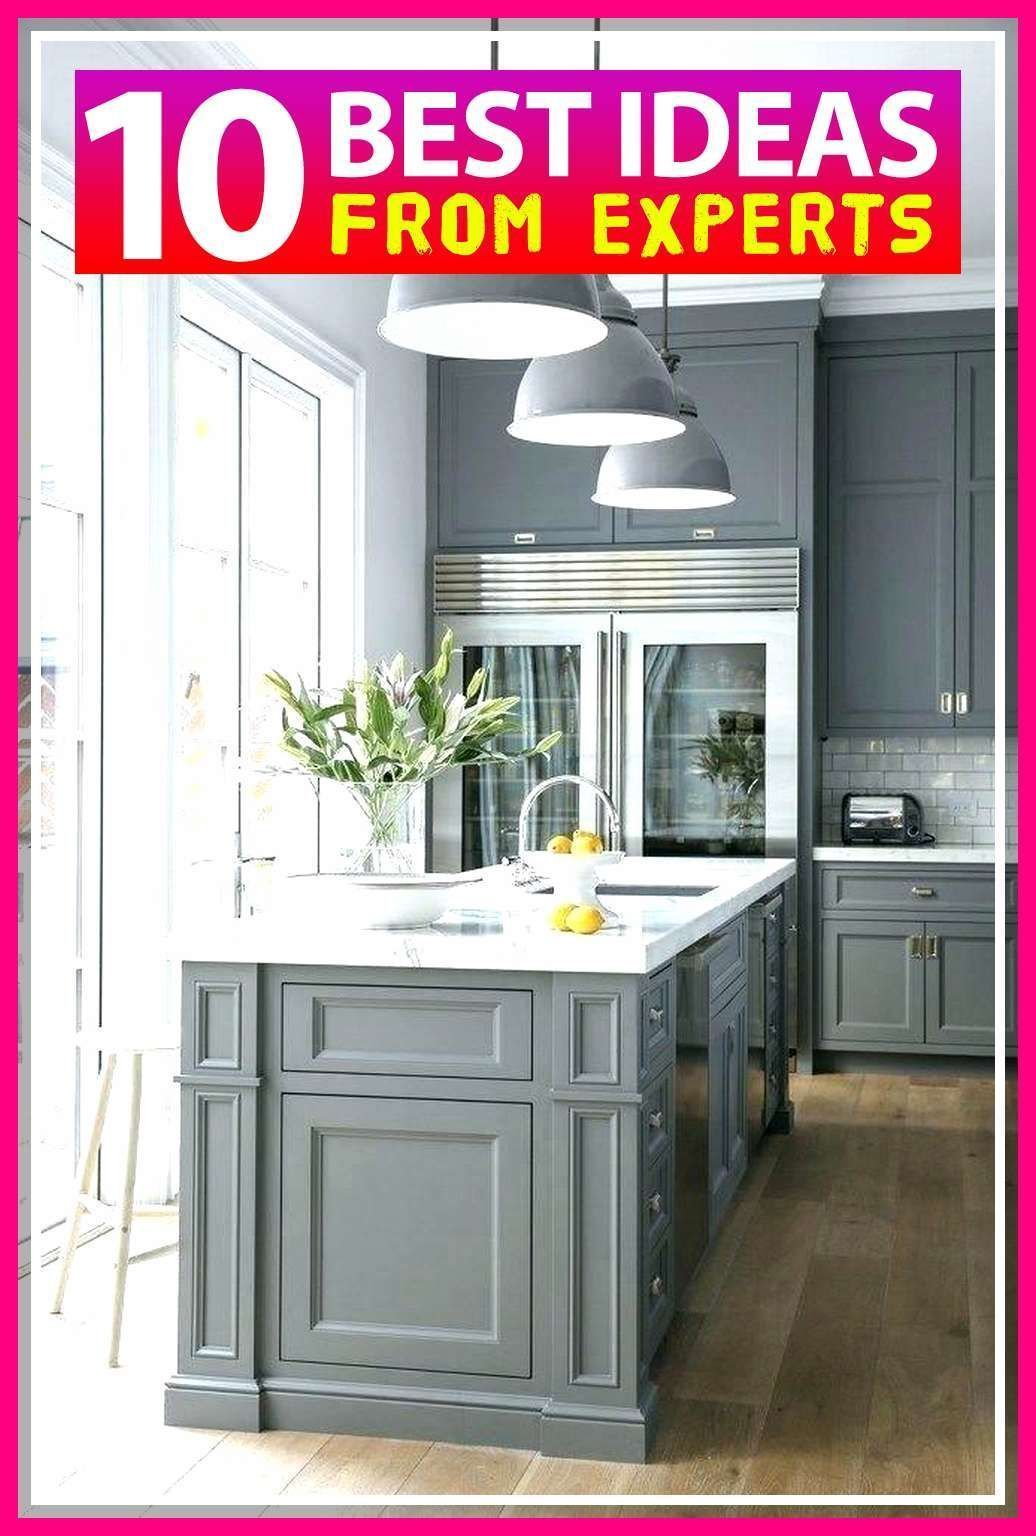 10 Kitchen Cabinets With Cute Paint Gray Walls Modern Black Kitchen Cabinets Black C In 2020 Black Kitchen Cabinets Modern Black Kitchen Painting Kitchen Cabinets